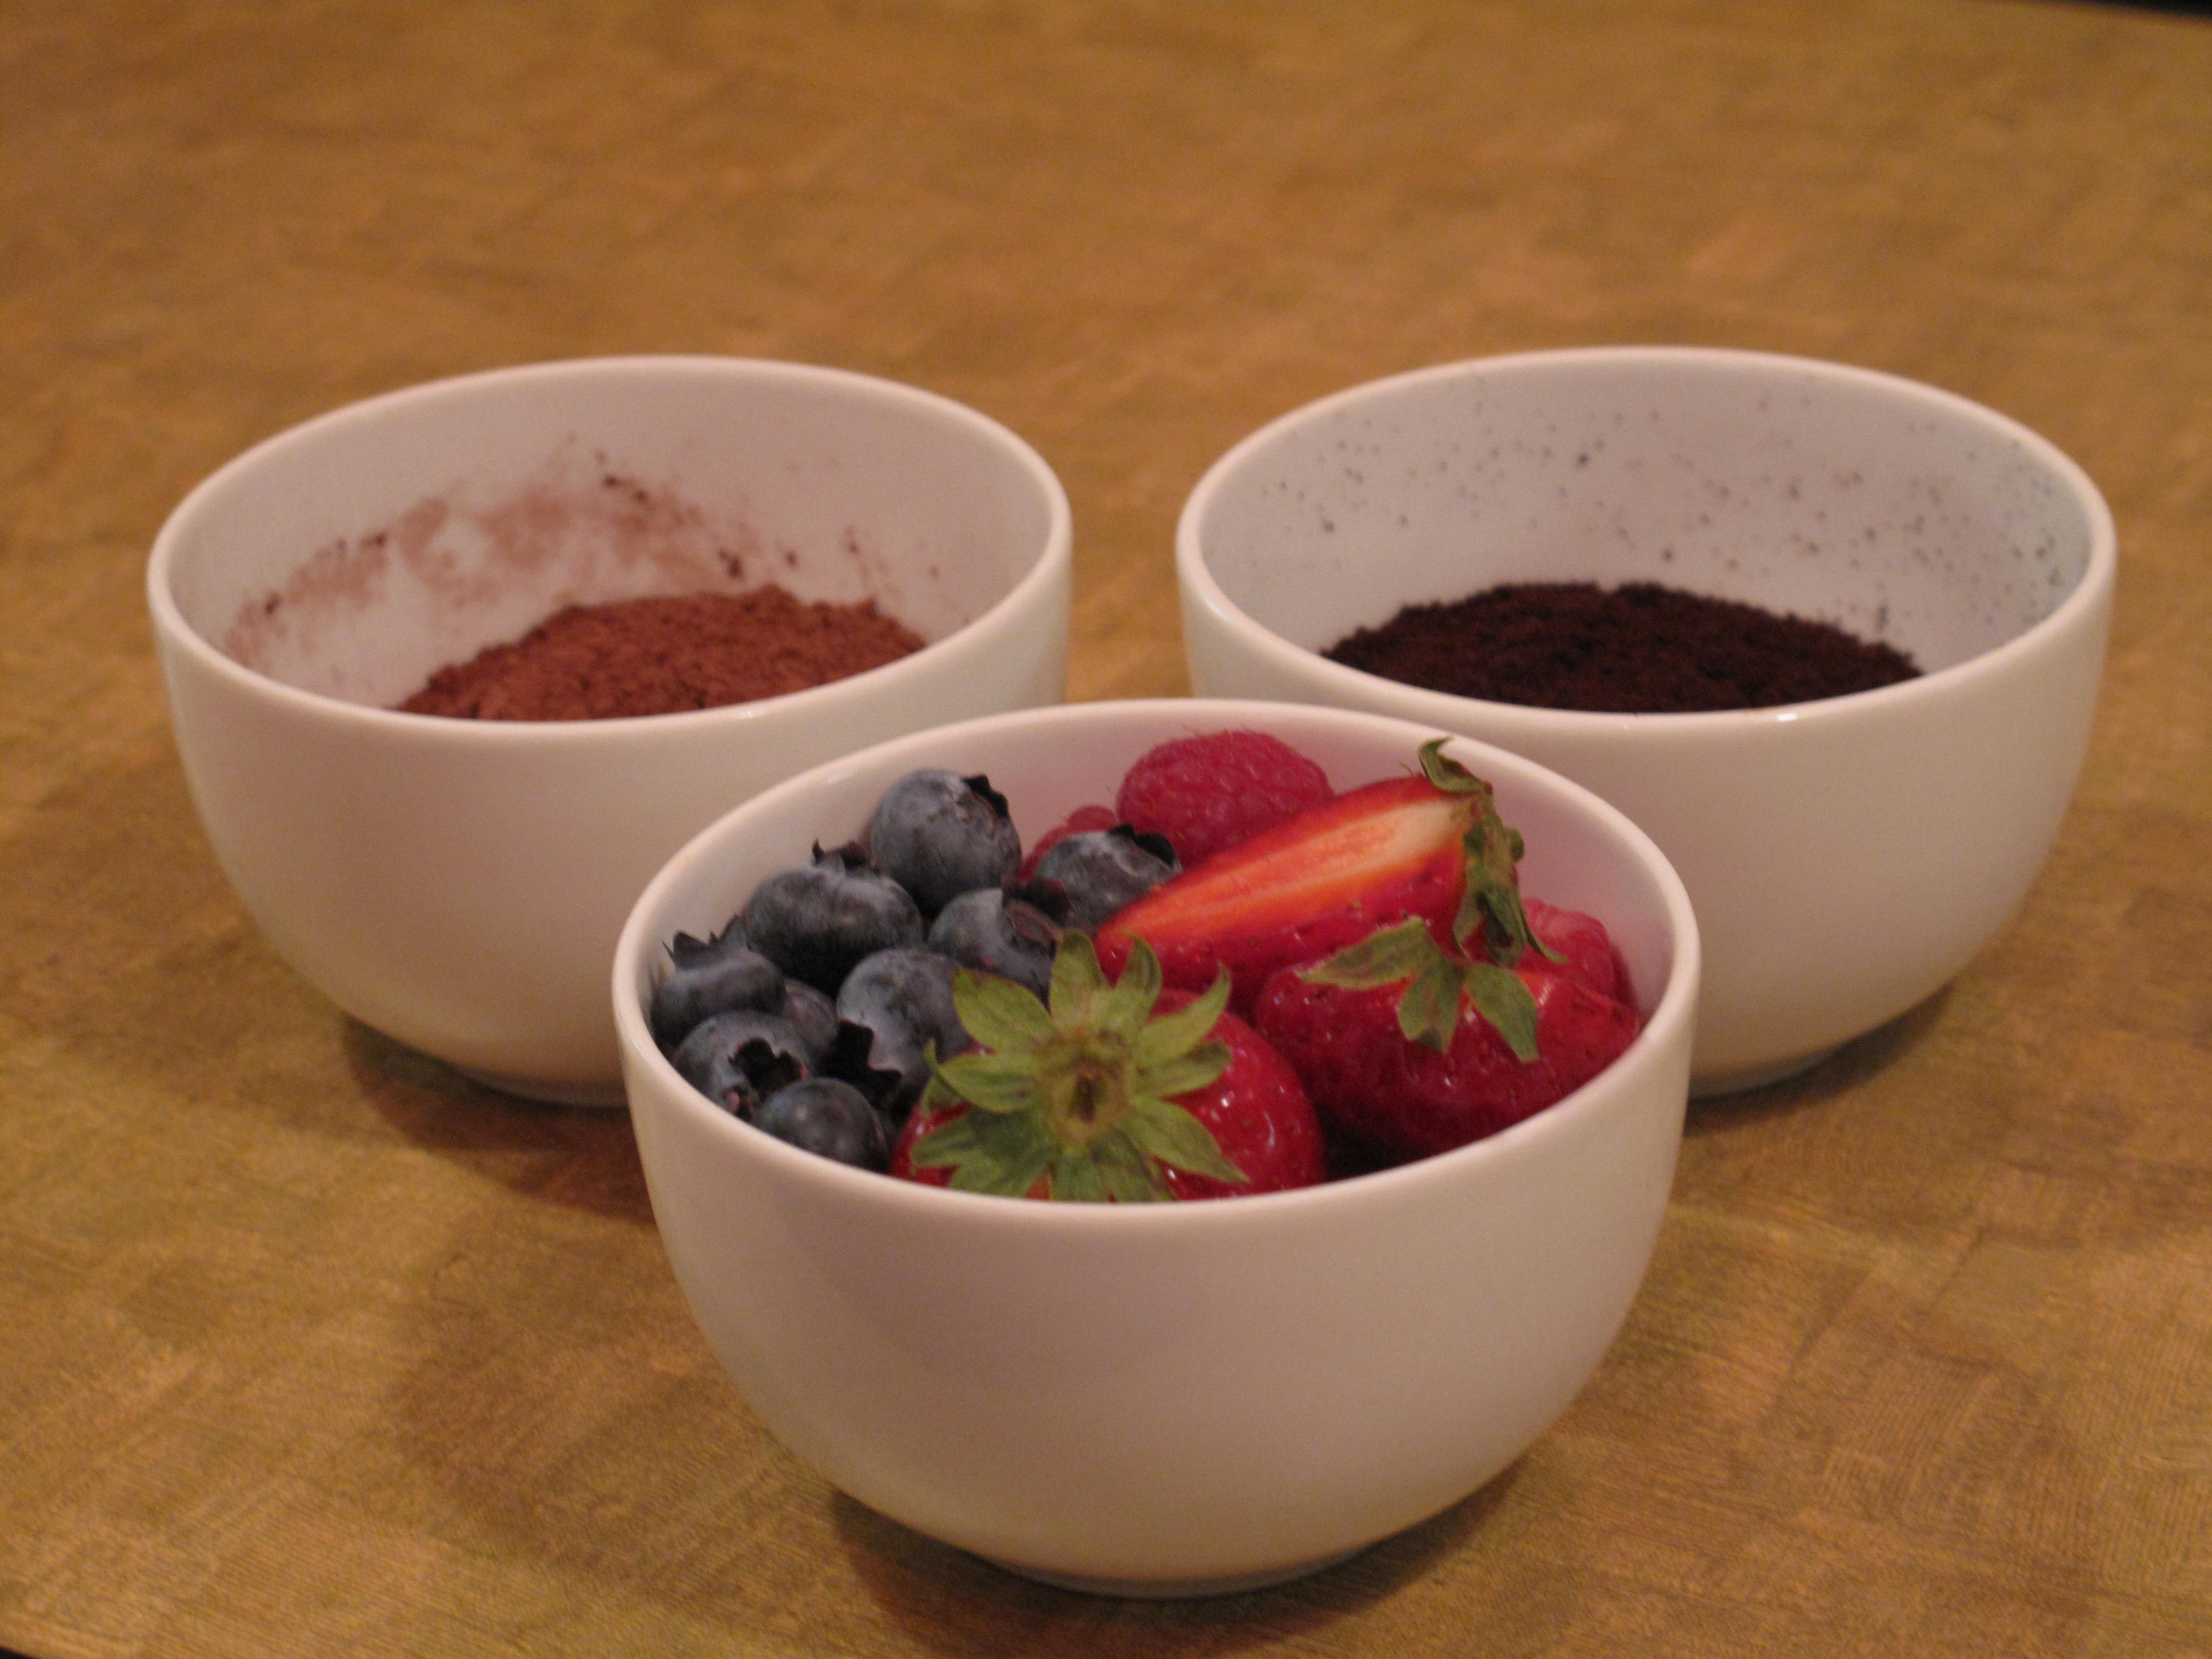 Strawberries and cocoa were the flavor profile for one coffee.